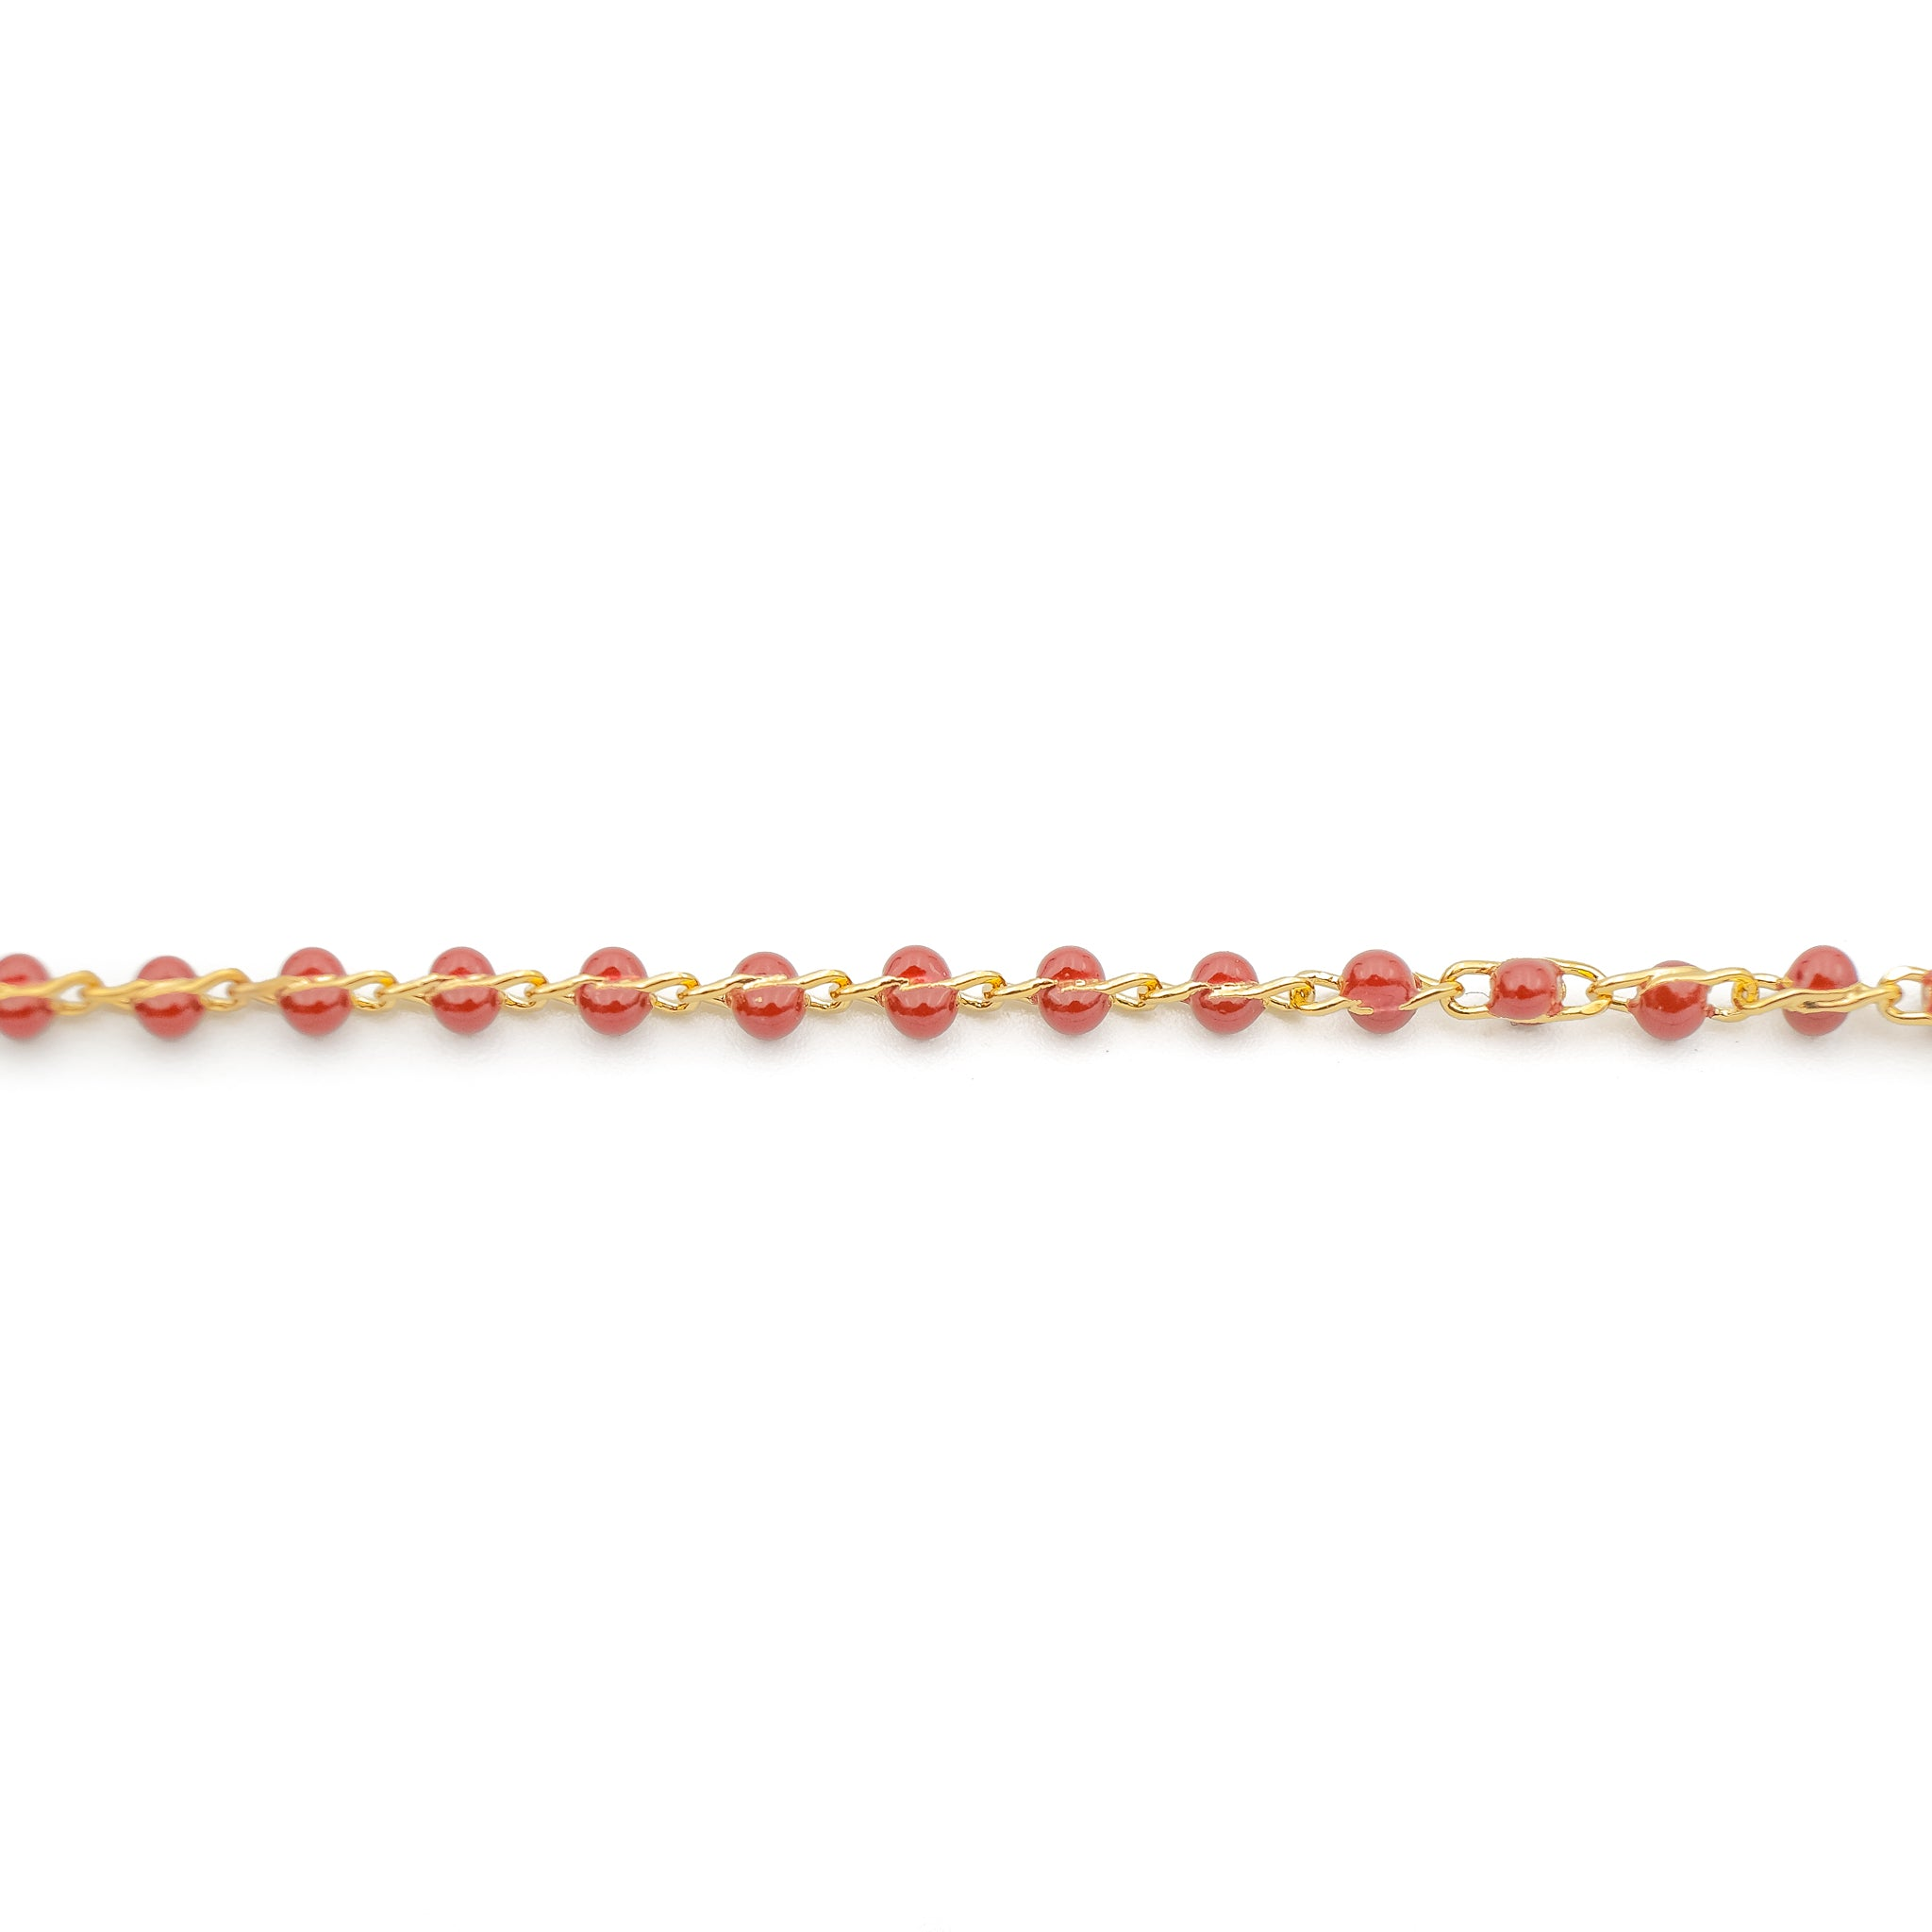 Chain #213 by ft - garnet beaded chain -2mm